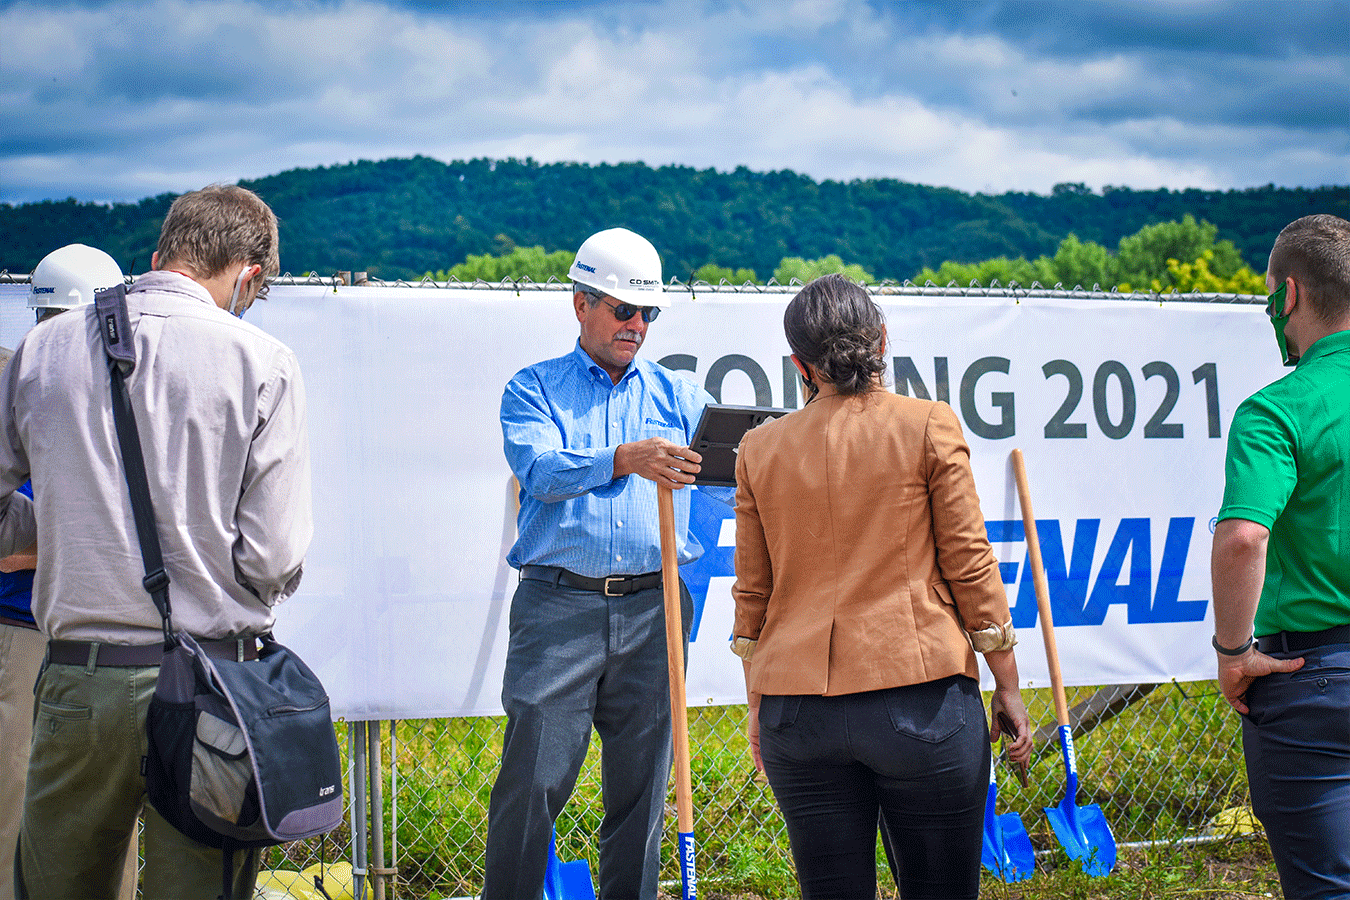 04-Fastenal-Groundbreaking-Ceremony-7-22-2020